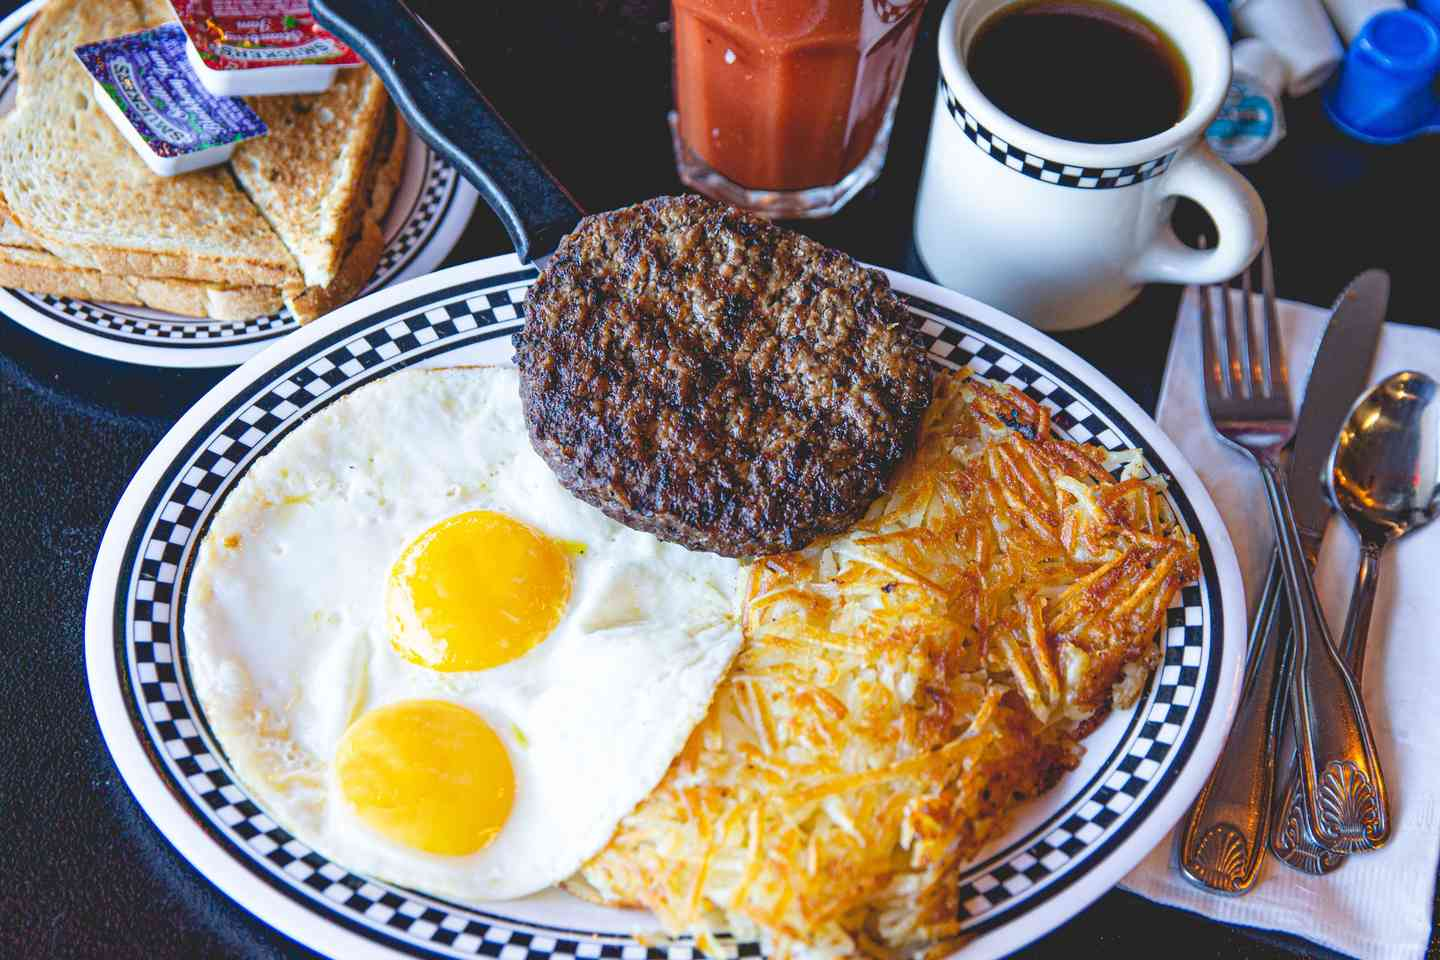 Ground Sirloin Steak & Eggs